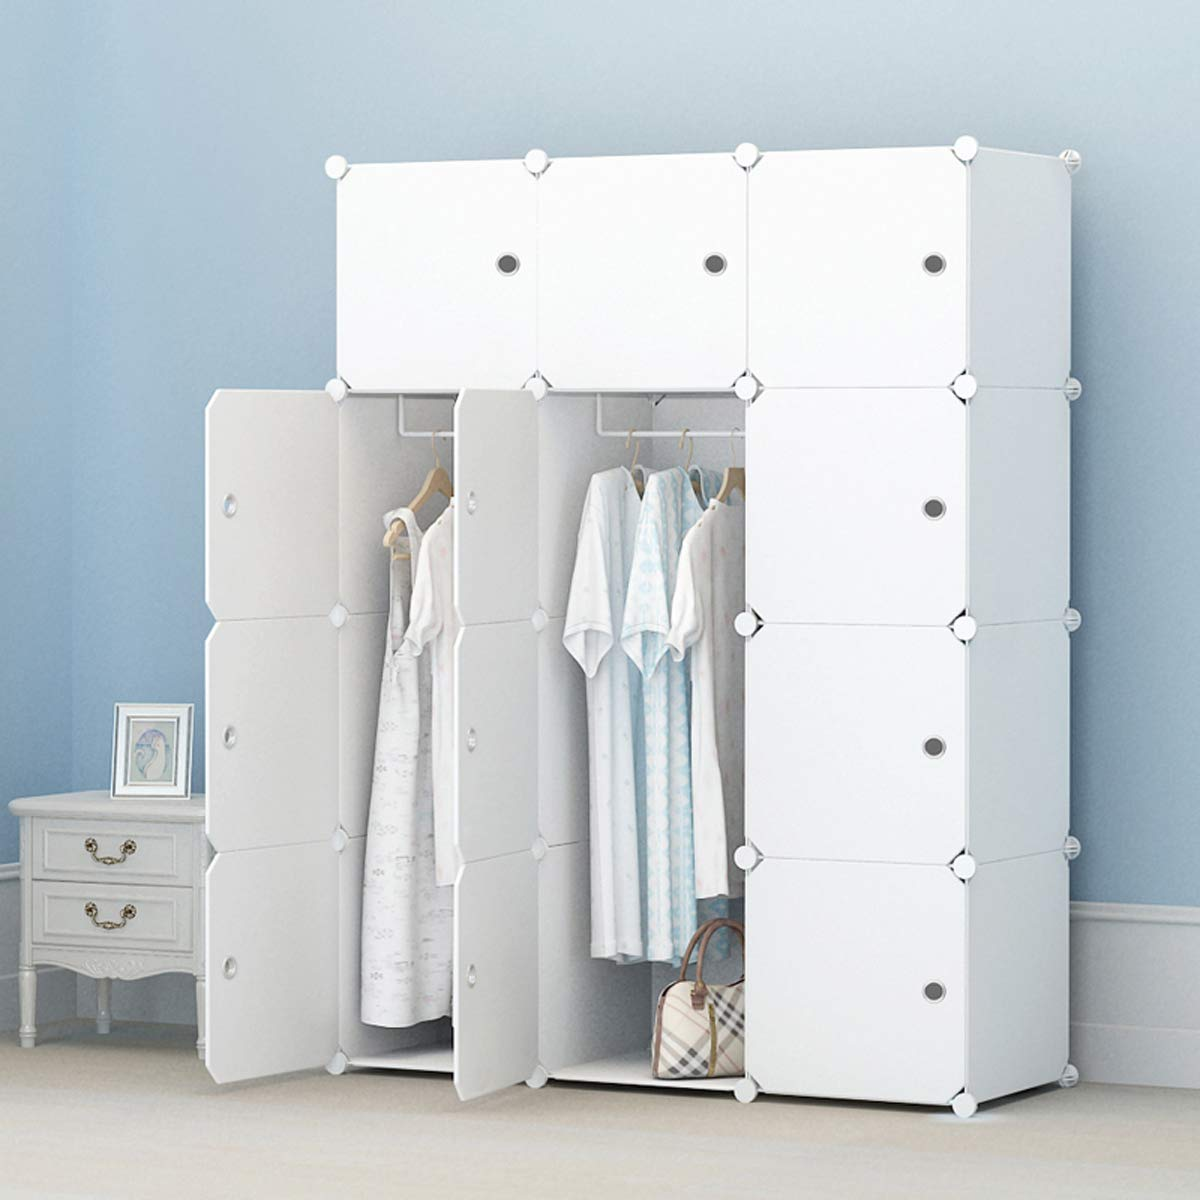 COLESHOME Portable Wardrobe Storage Organizer Cube Armoire Modular Cabinet for Space Saving for Bed Room Living Room (6 Cube 2 Hanger, White) by COLESHOME